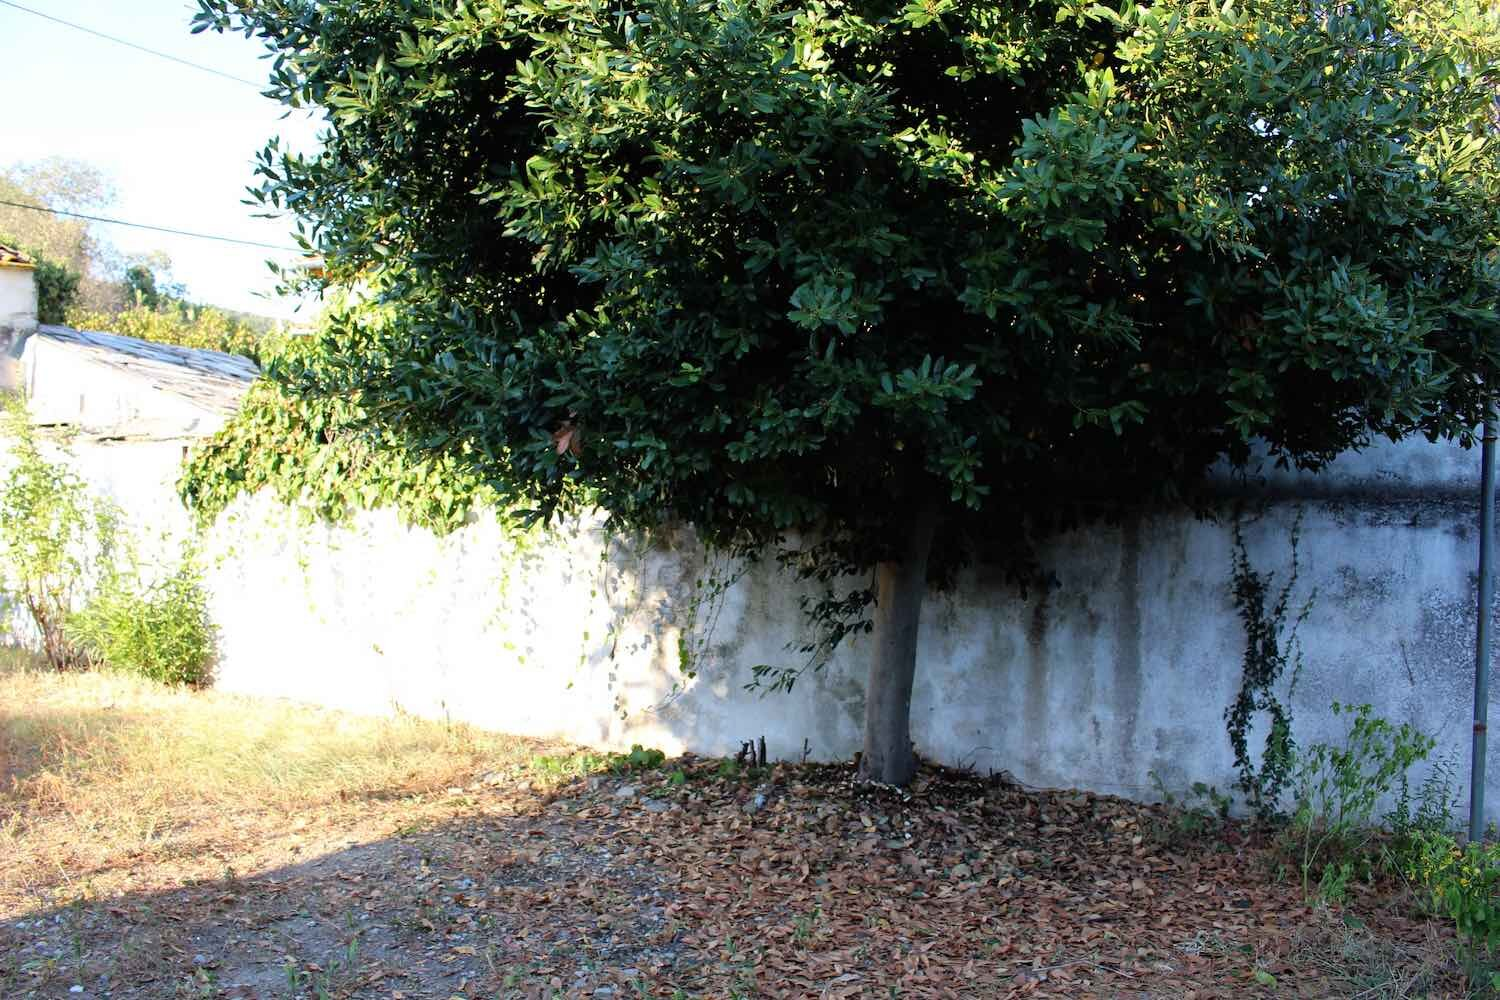 A bay laurel tree growing against a wall